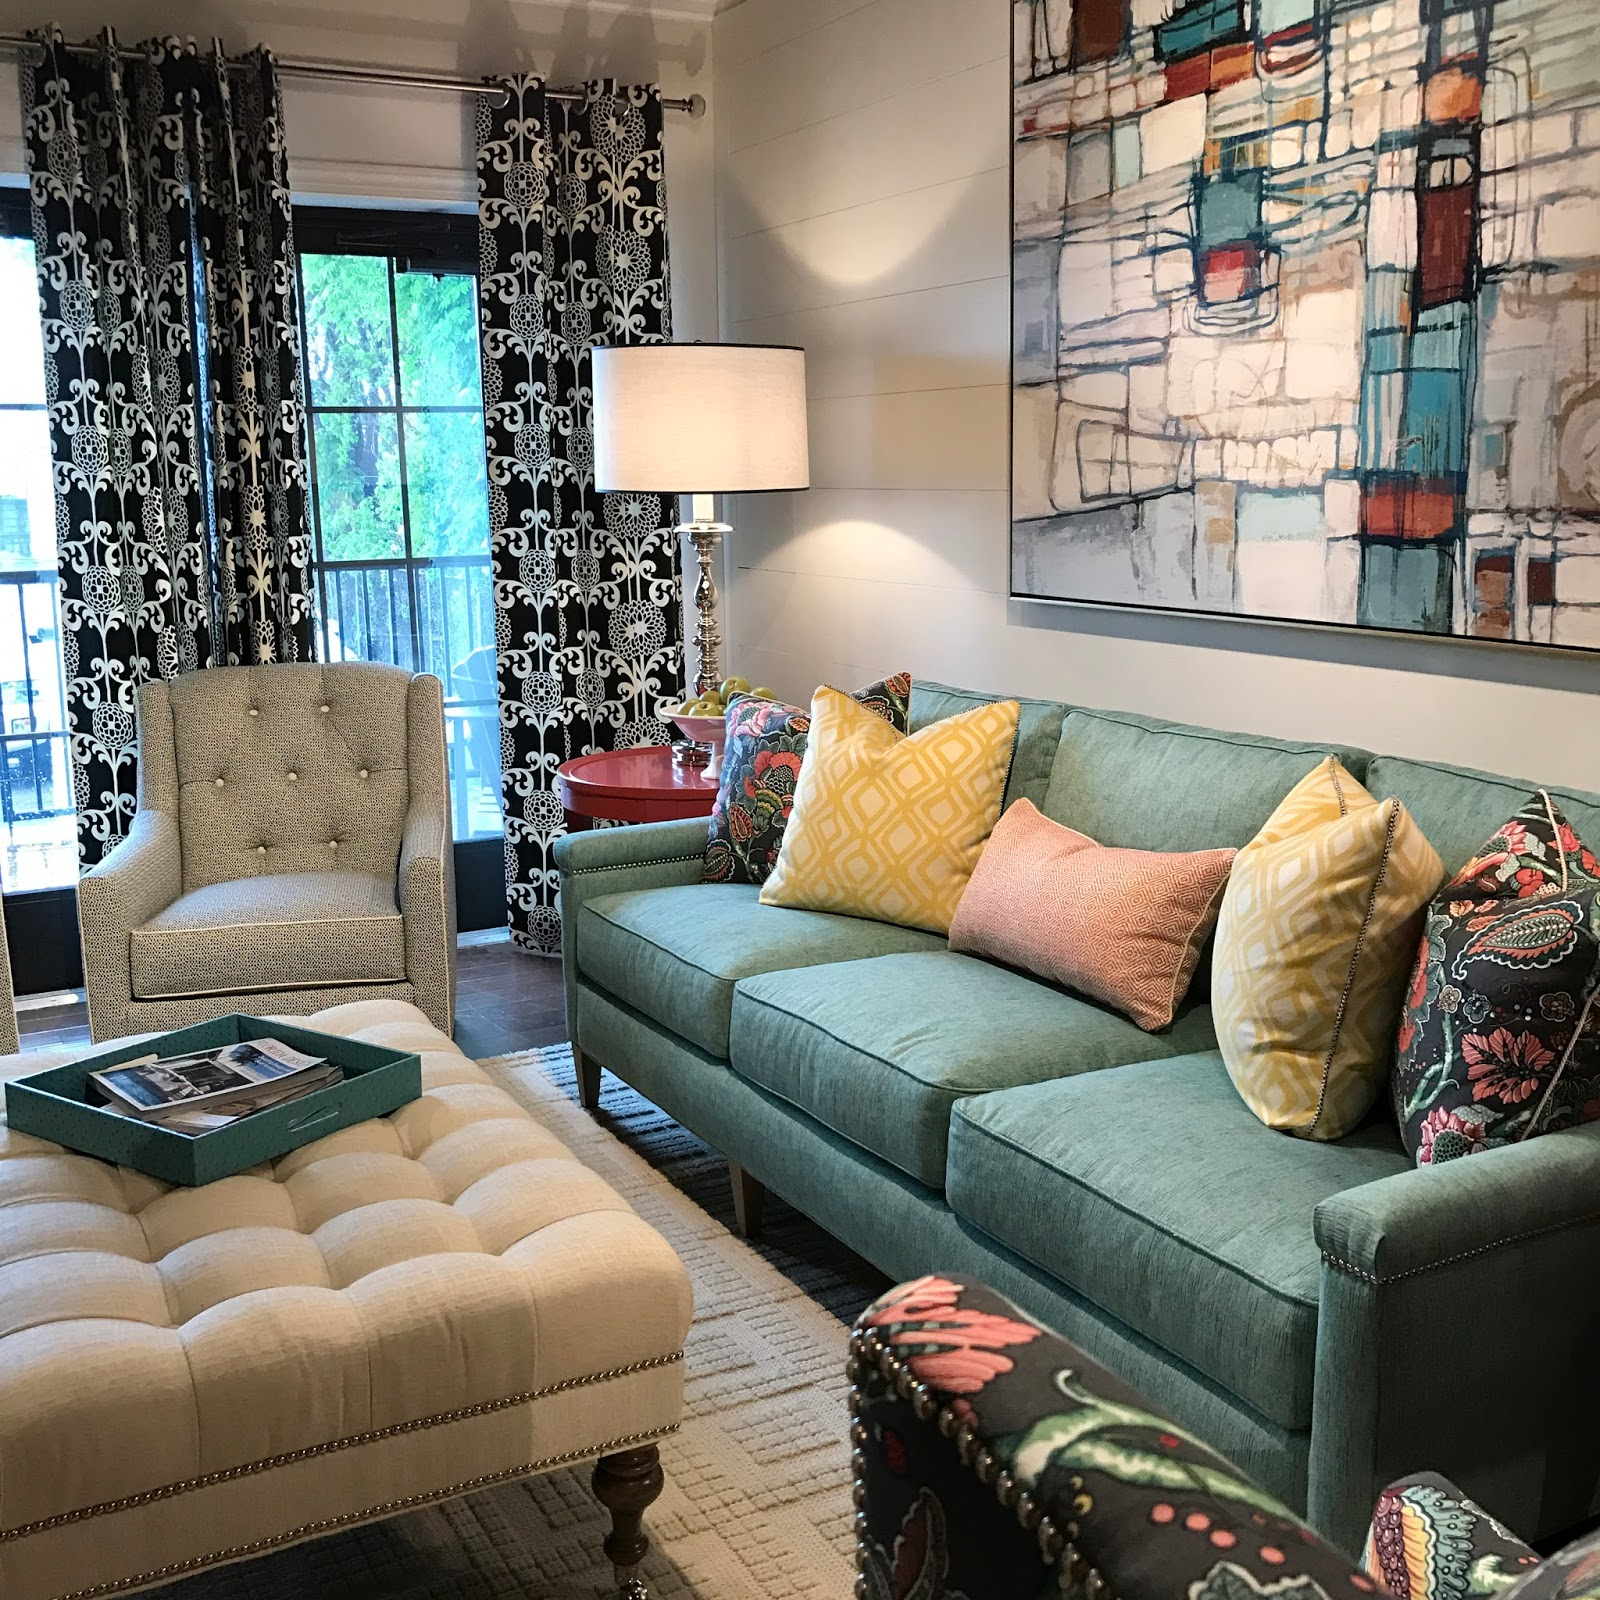 We Enjoyed Our Visit To Huntington House Furniture. Always So Nice To Visit  Their Showroom And See What Is New. My Absolute Favorite Sofa In Their  Showroom ...